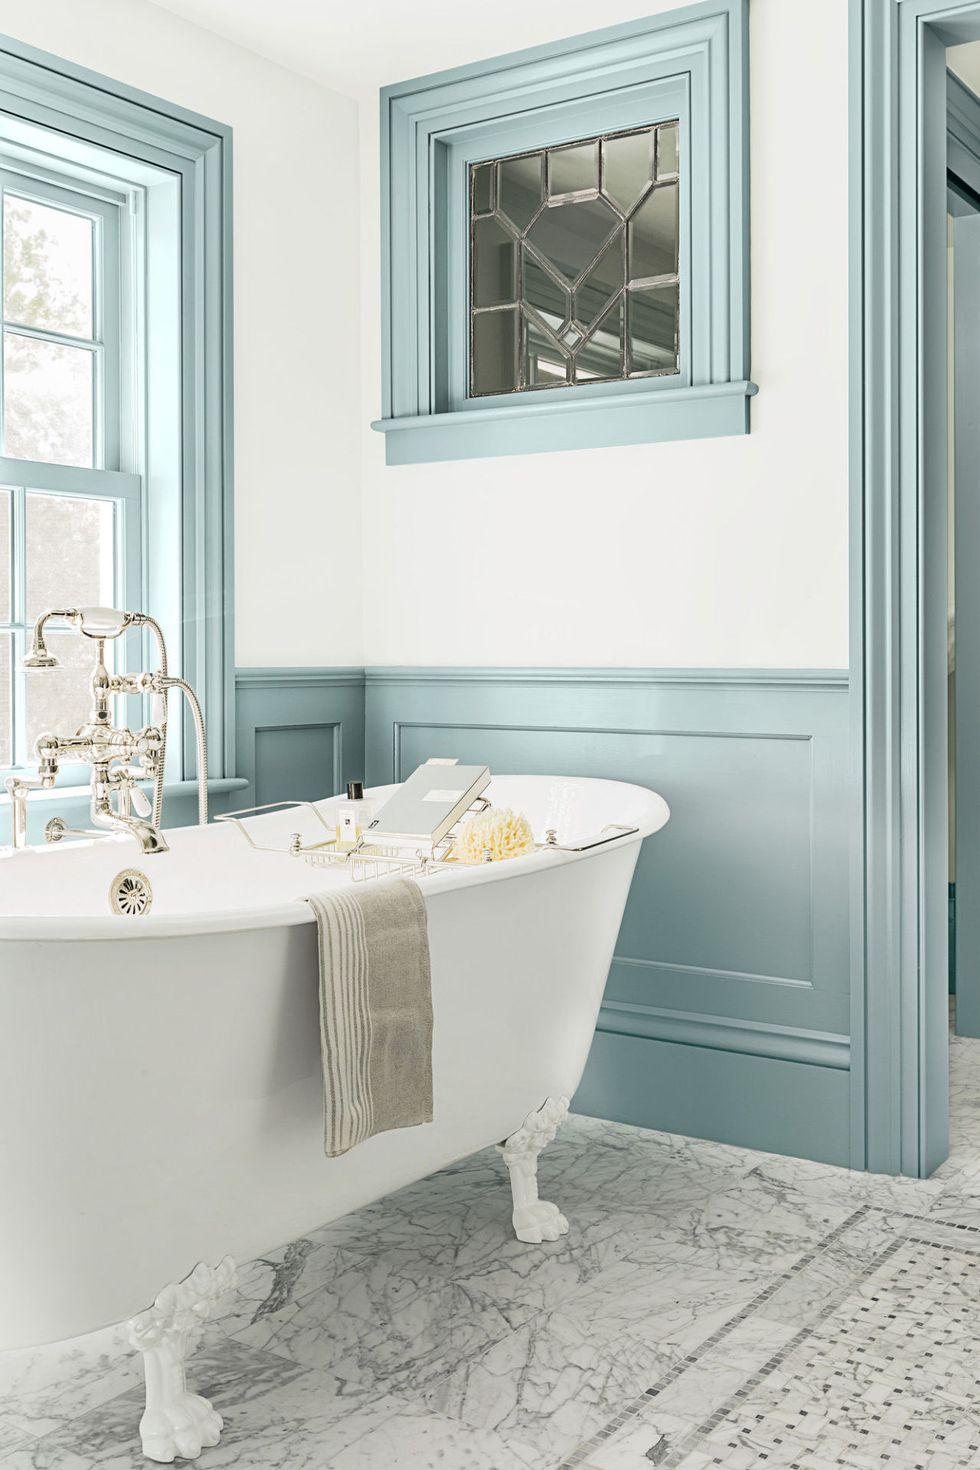 How to Decorate a Bathroom - Painted Furniture Ideas